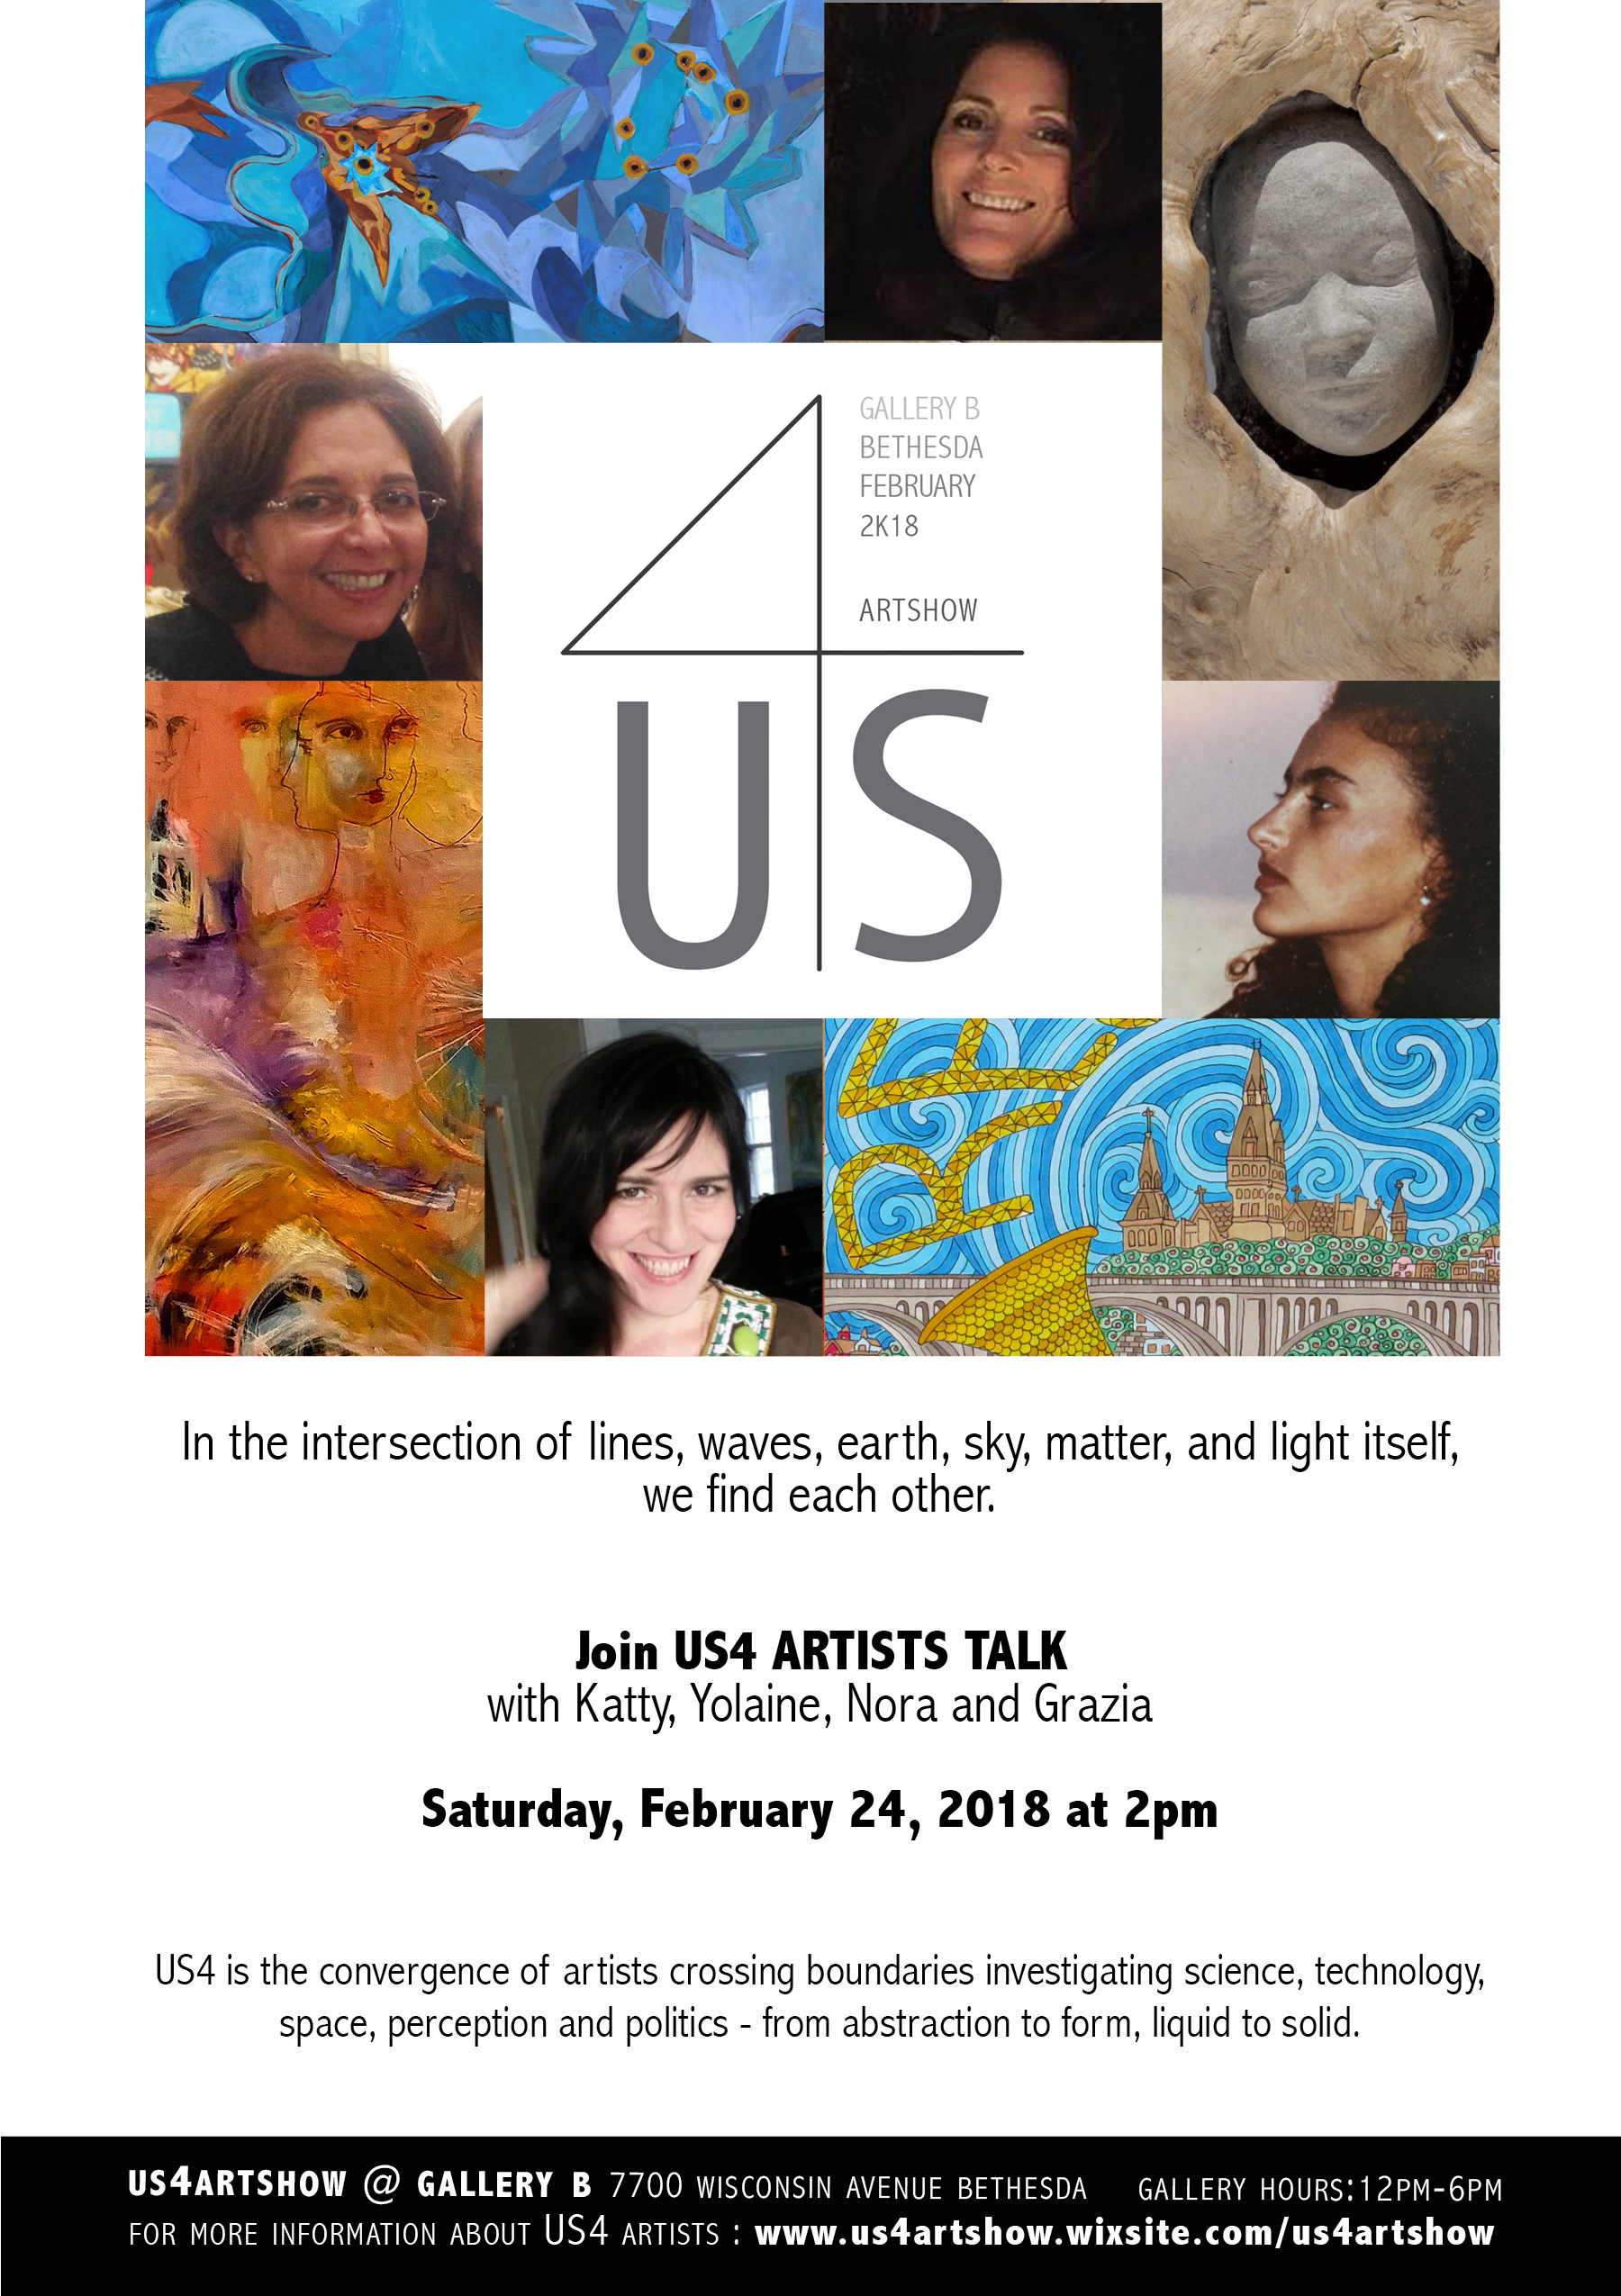 artists talk invite